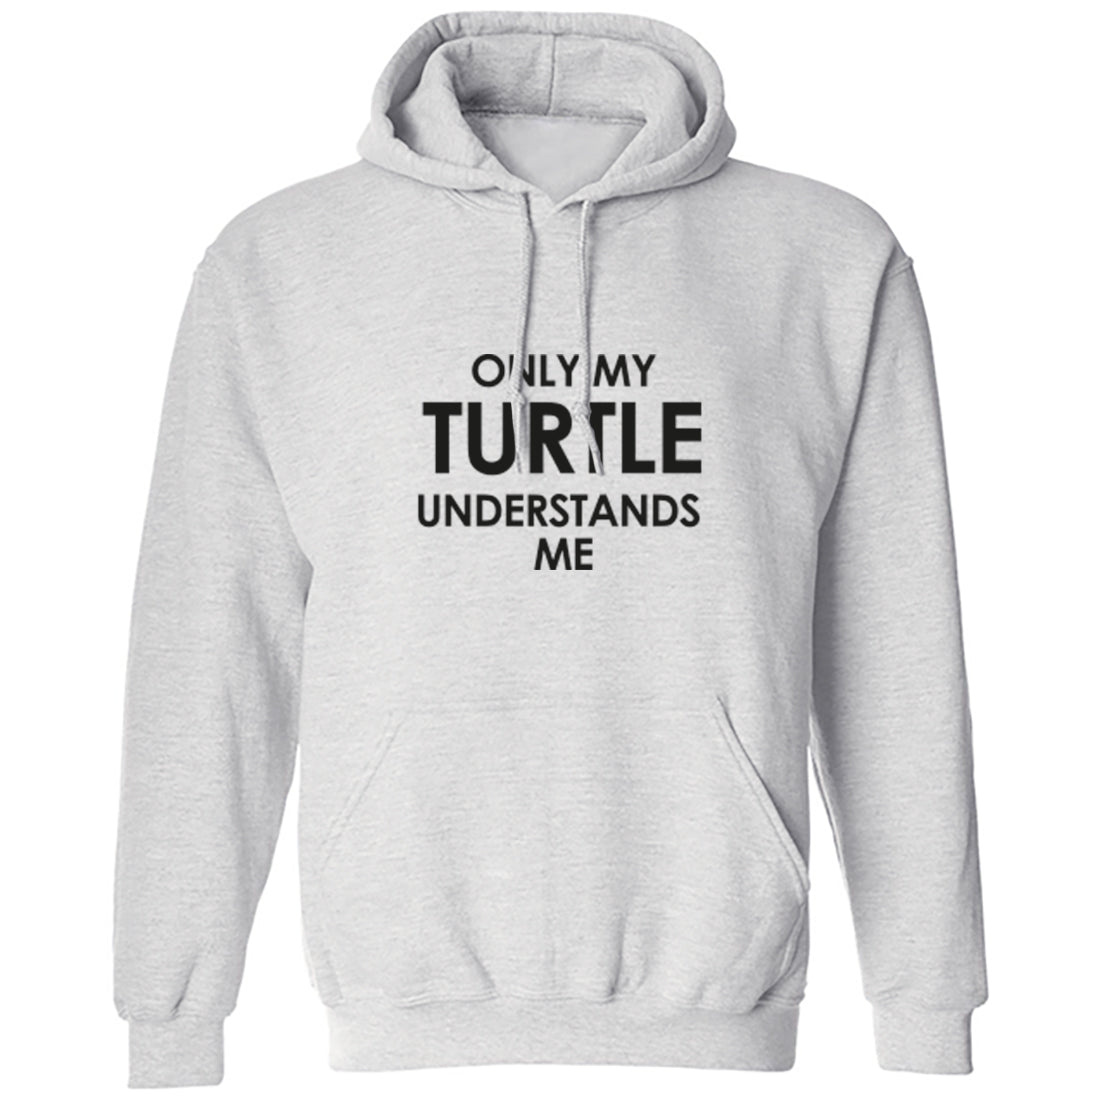 Only My Turtle Understands Me Unisex Hoodie K1565 - Illustrated Identity Ltd.